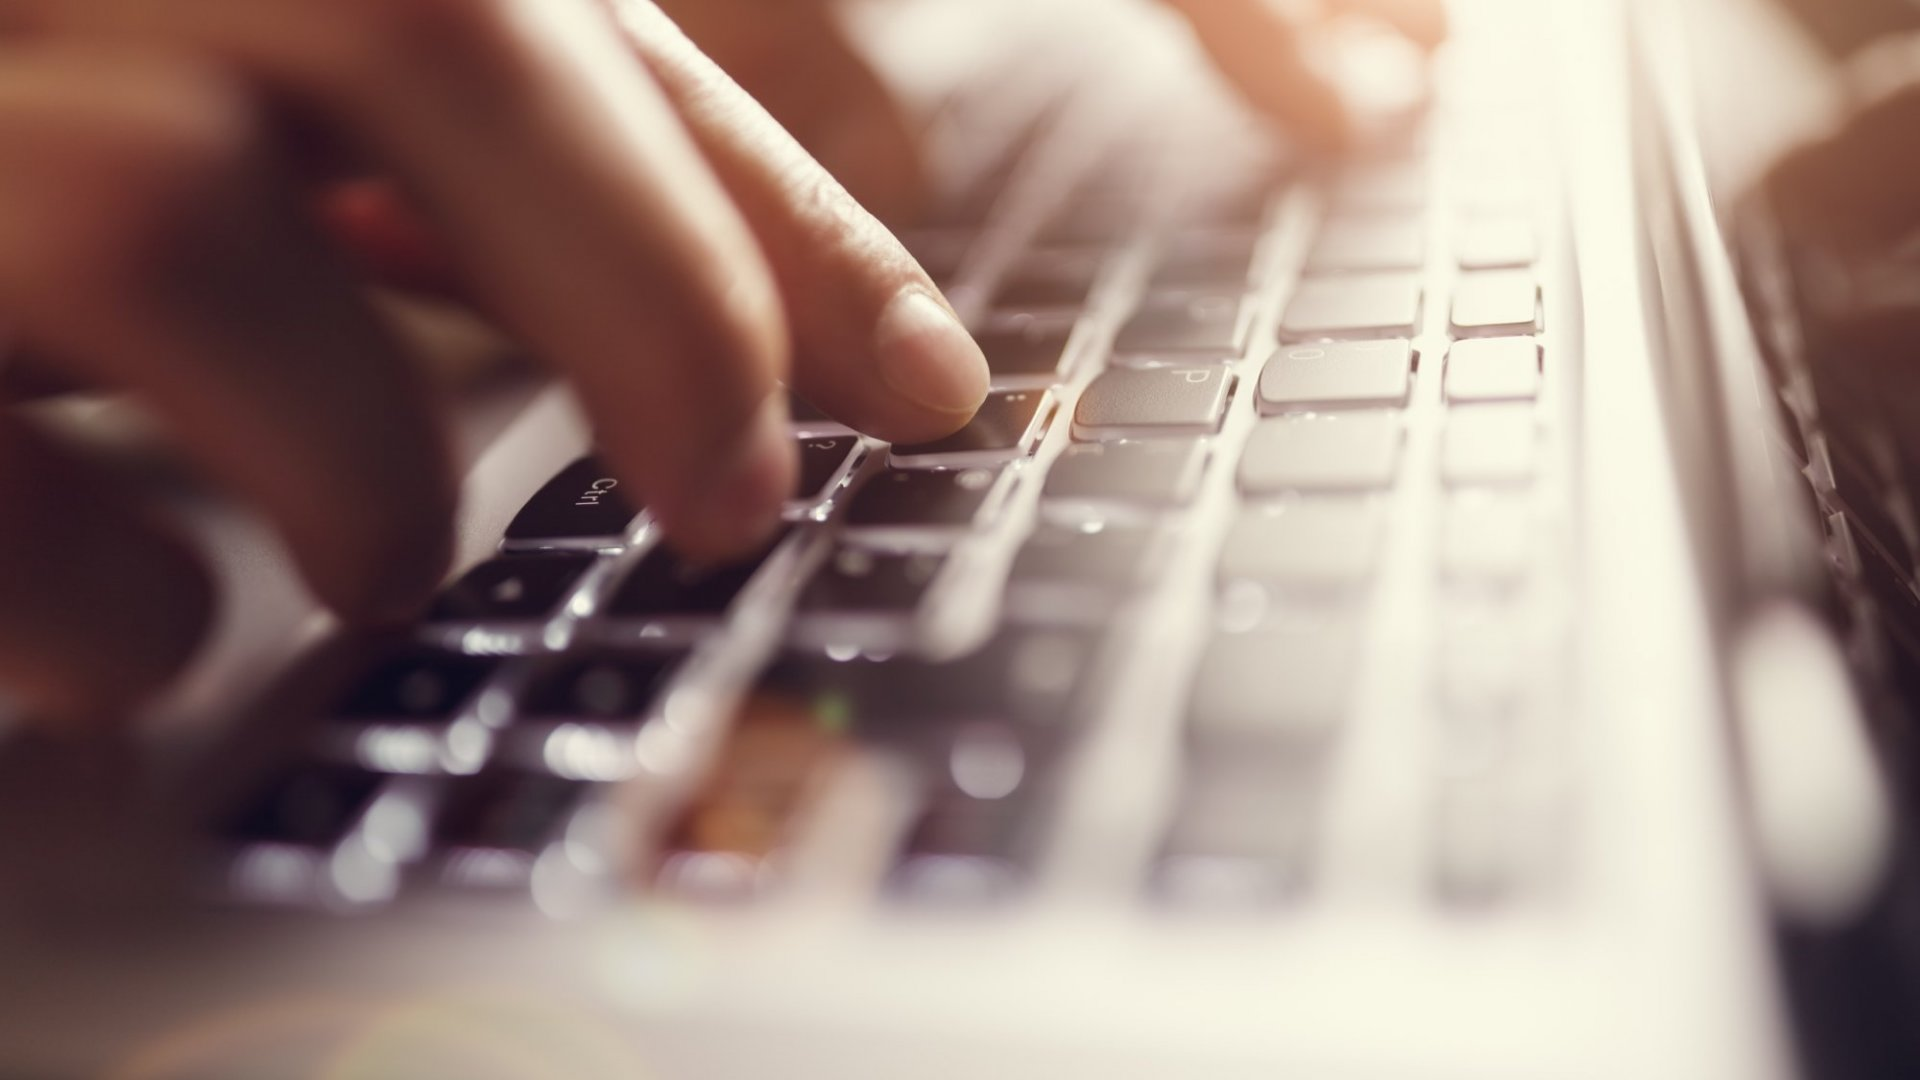 5 Simply Brilliant Ways to Be the Boss of Your Email (Instead of It Being the Boss of You)